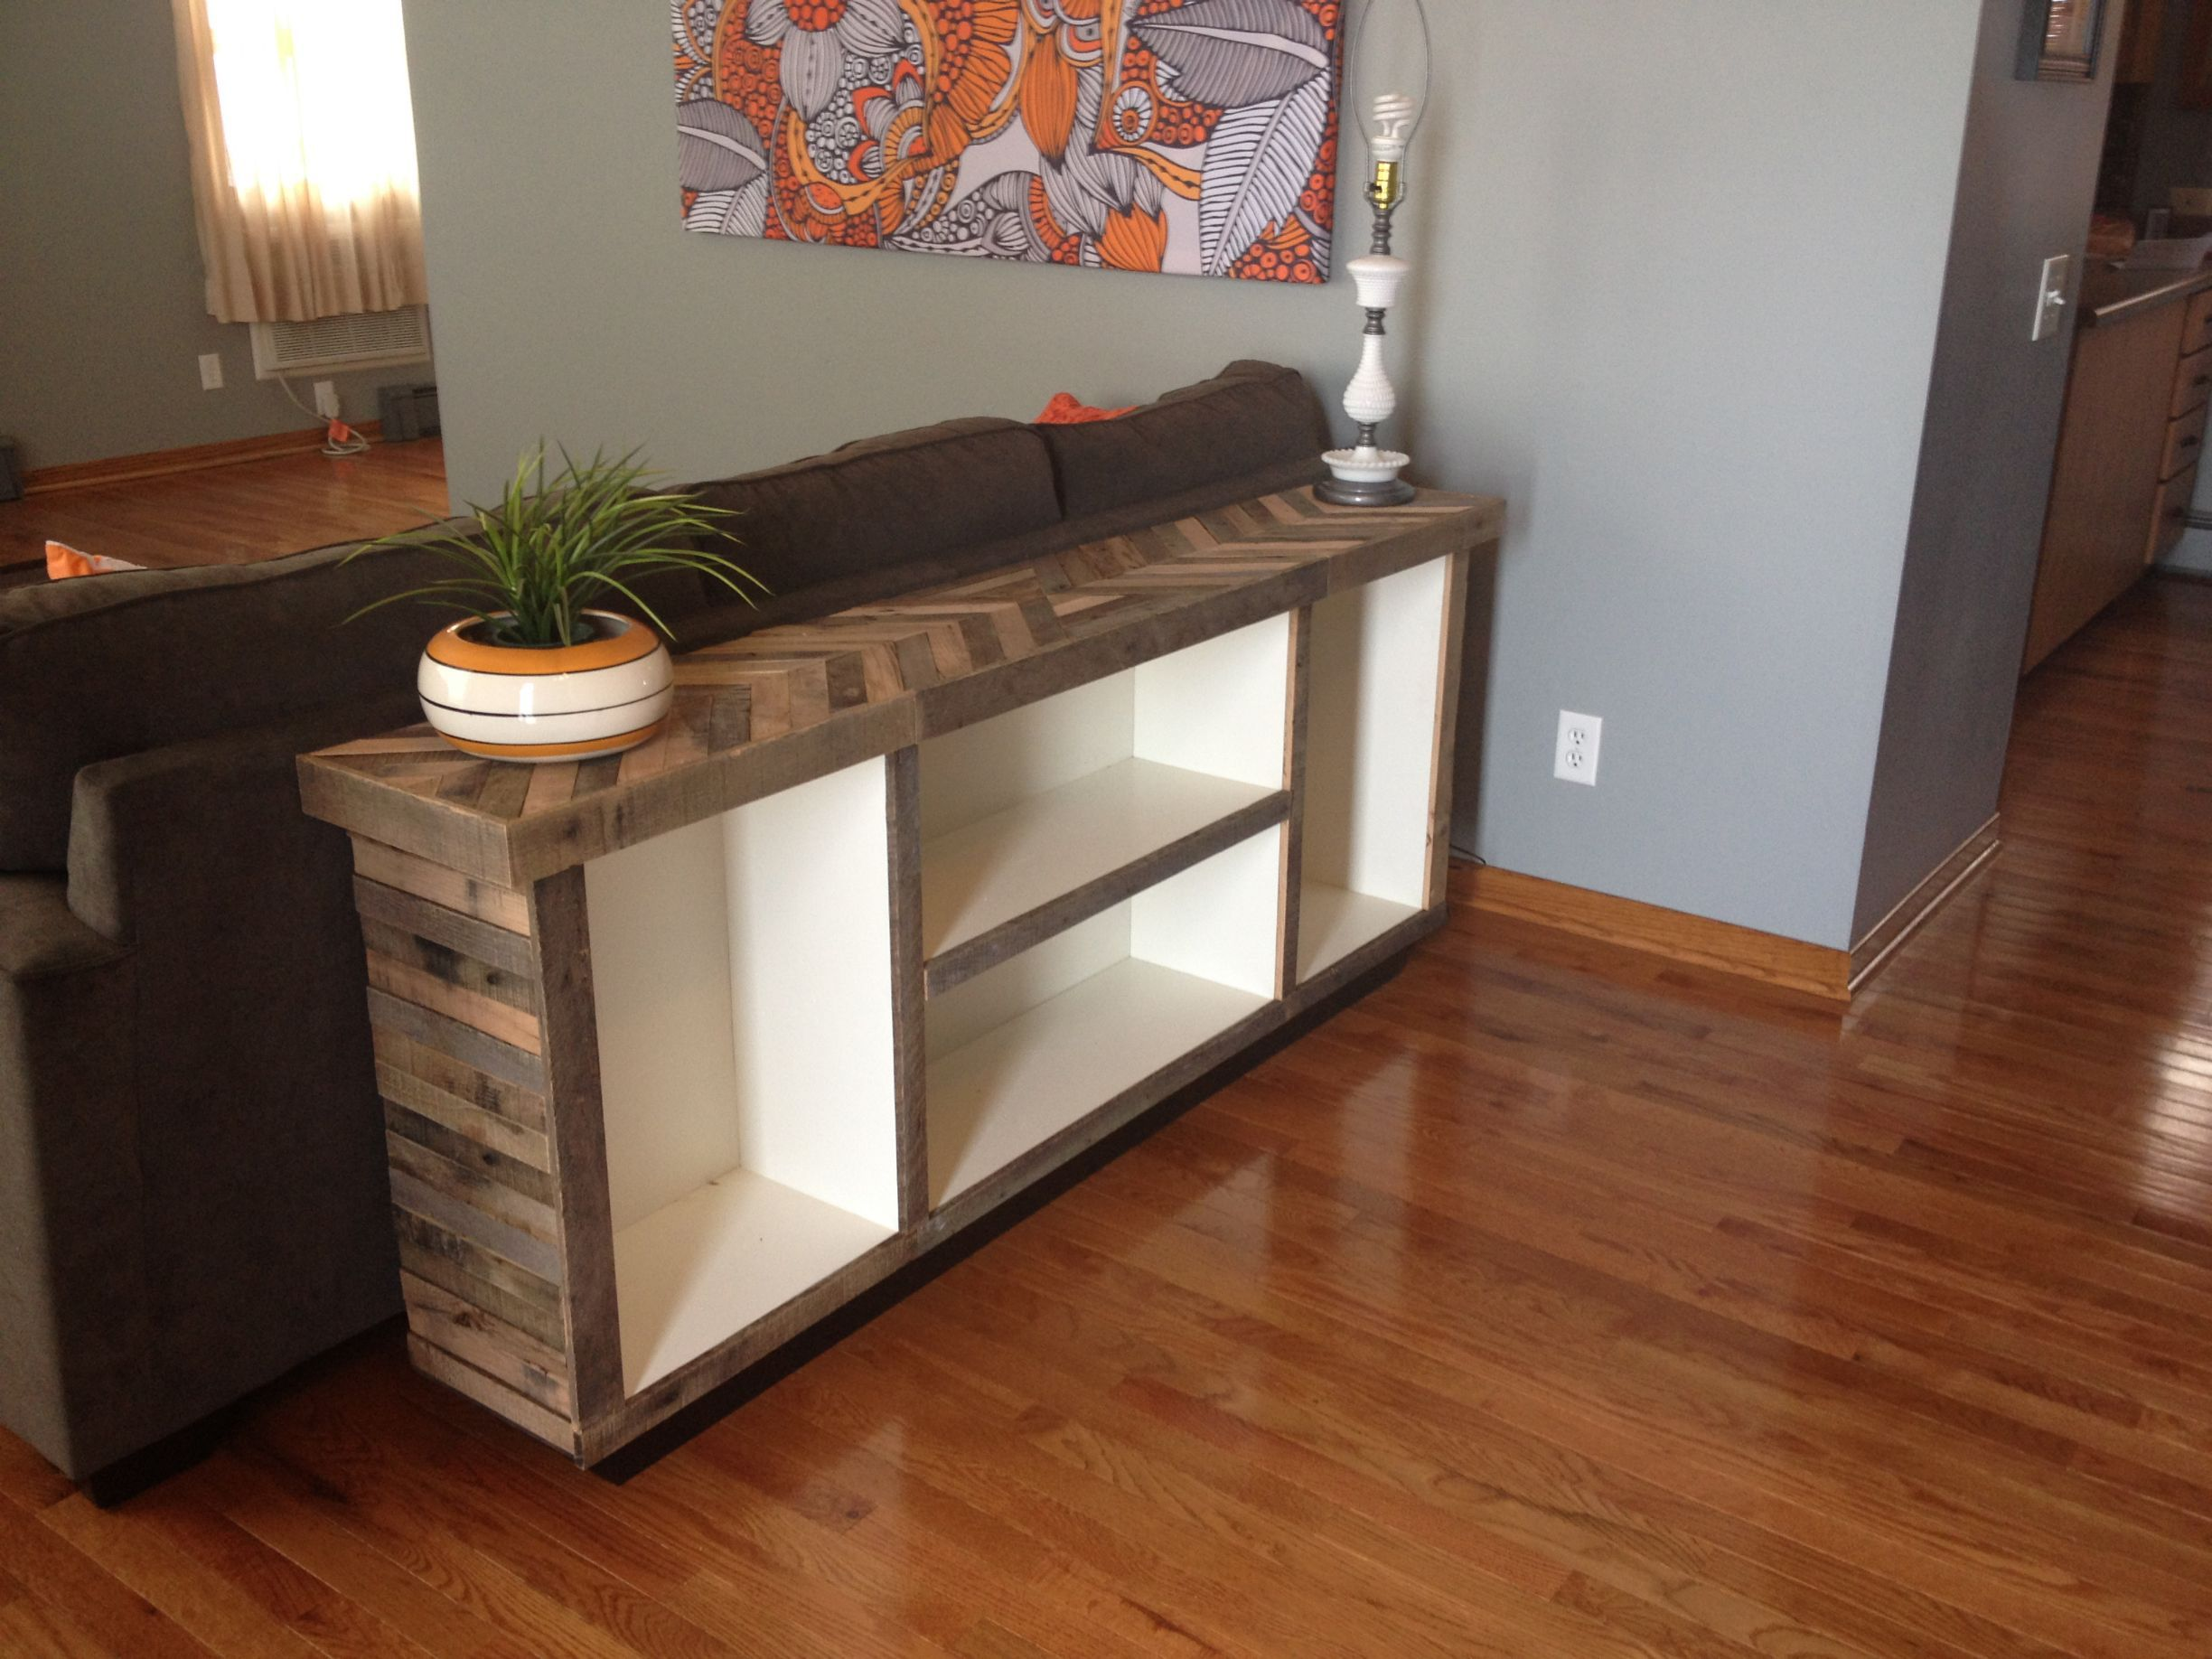 12 Clever Ways To Repurpose Wooden Pallets Diy Sofa Table Diy Pallet Sofa Sofa Table Design